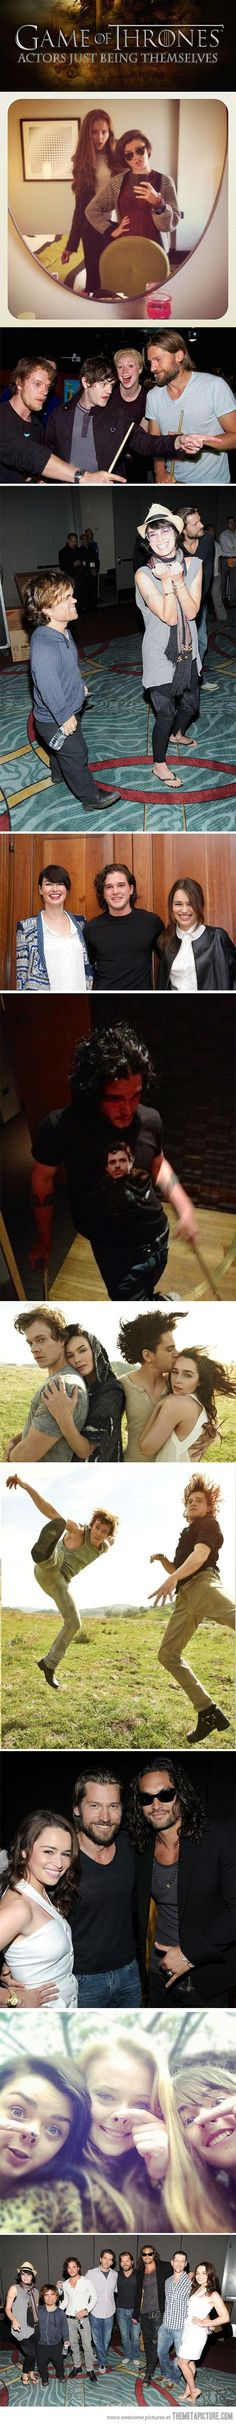 Game of Thrones actors just being themselves…